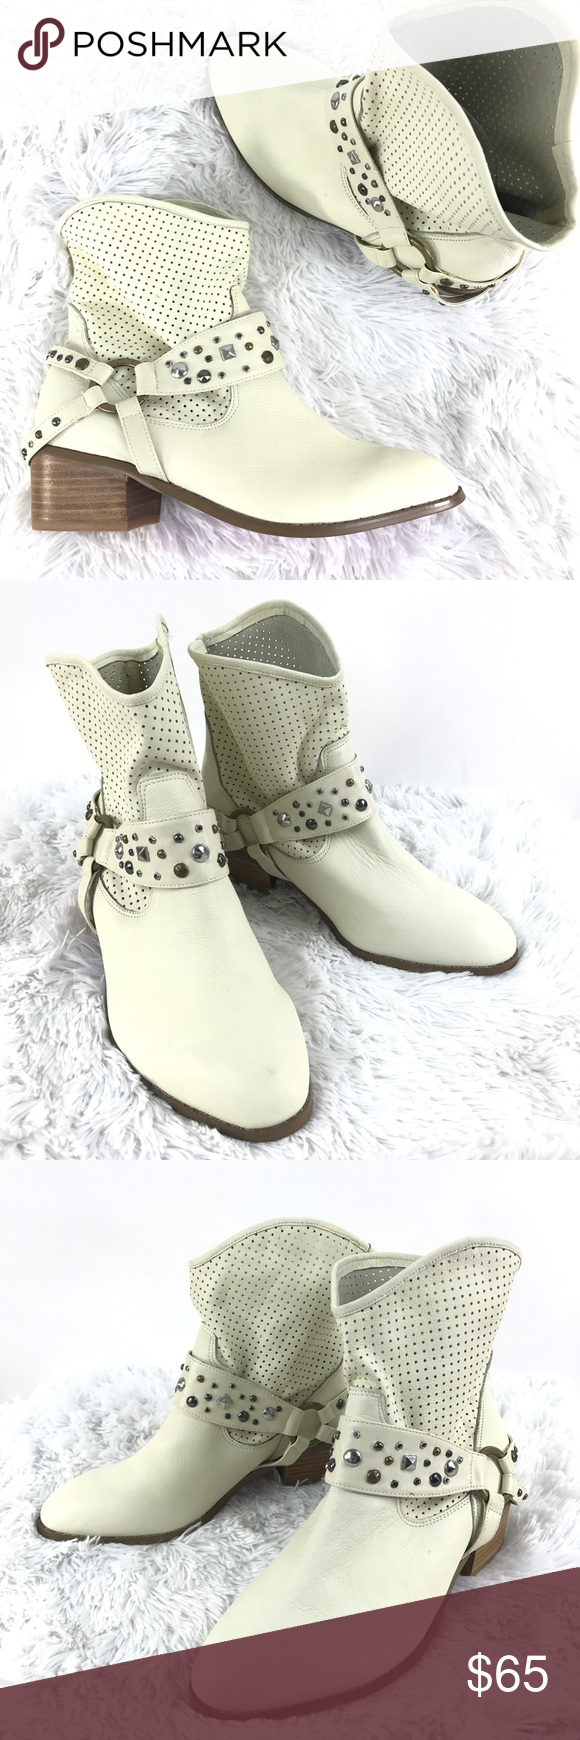 9ba1c2f41a Twiggy of London cream white booties Sz 8.5 NEW Twiggy of London Sz 8.5 W  White Perforated Leather Western Ankle Boots NEW Size: 8.5 Color: White  (Cream) ...